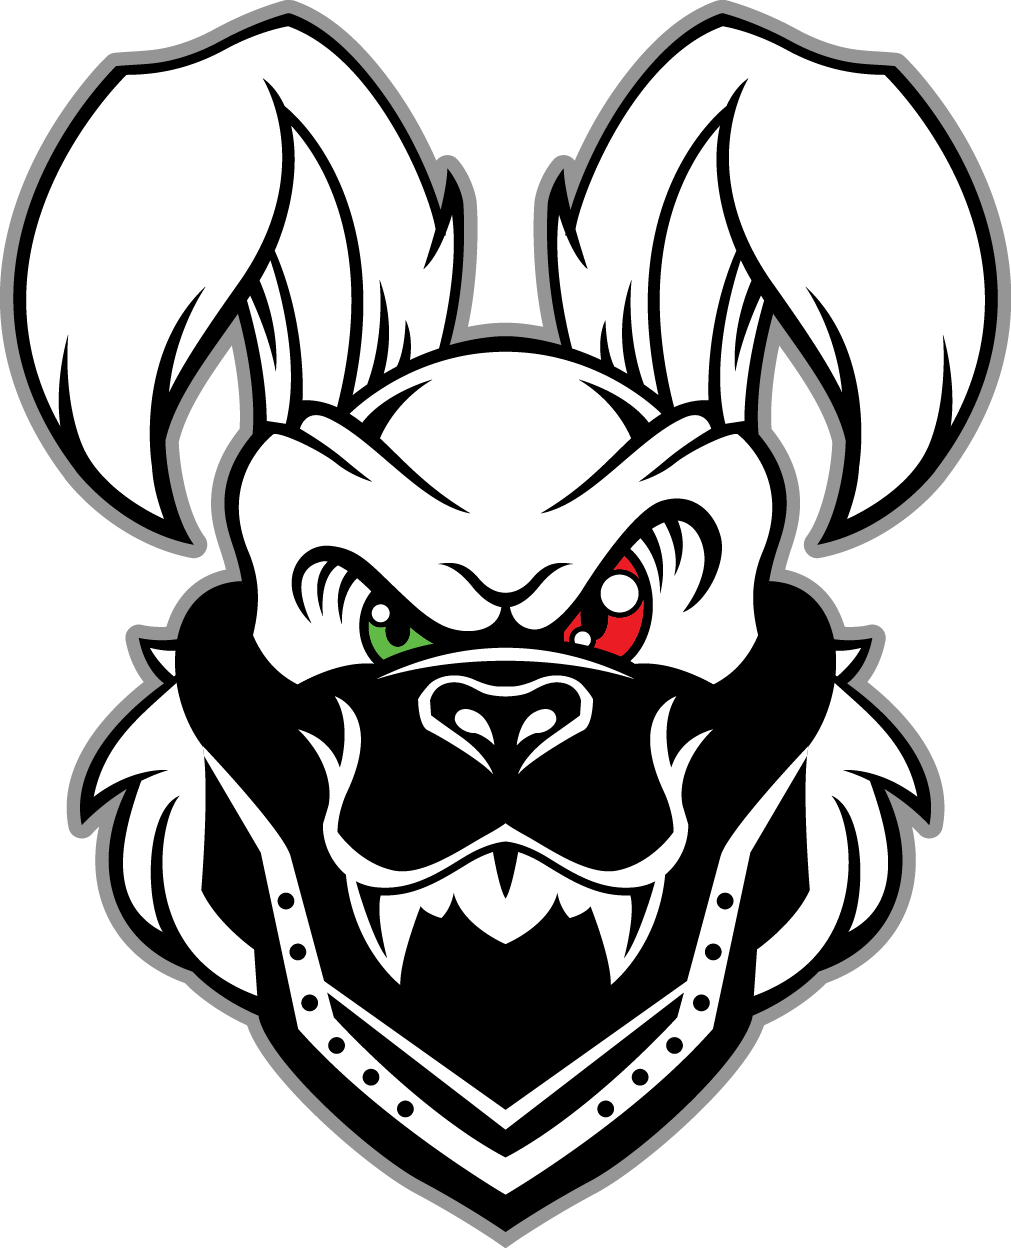 The Burrow Clothing South Sydney Rabbitohs Street Wear Design